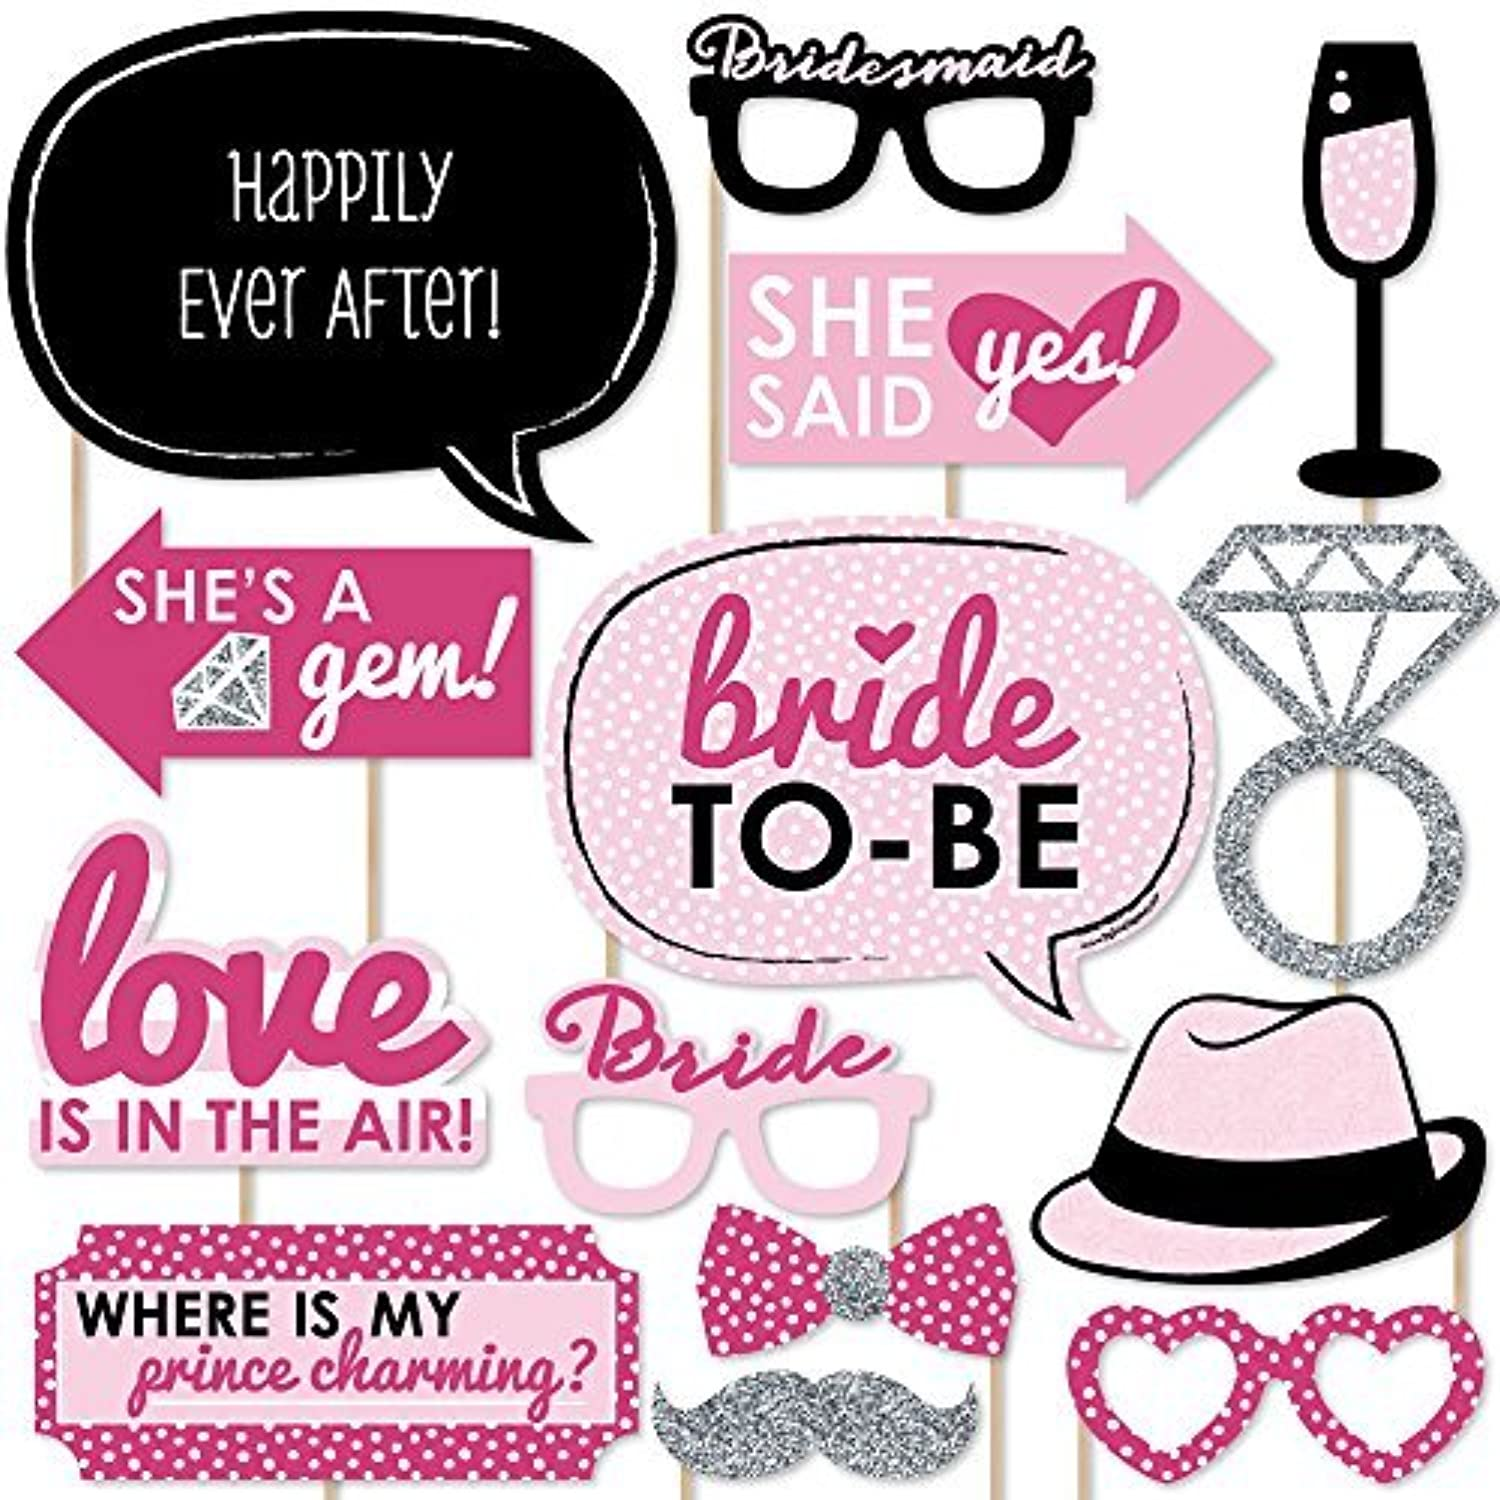 Bride-To-Be - Bachelorette Party Photo Booth Props Kit - 20 Count [並行輸入品]